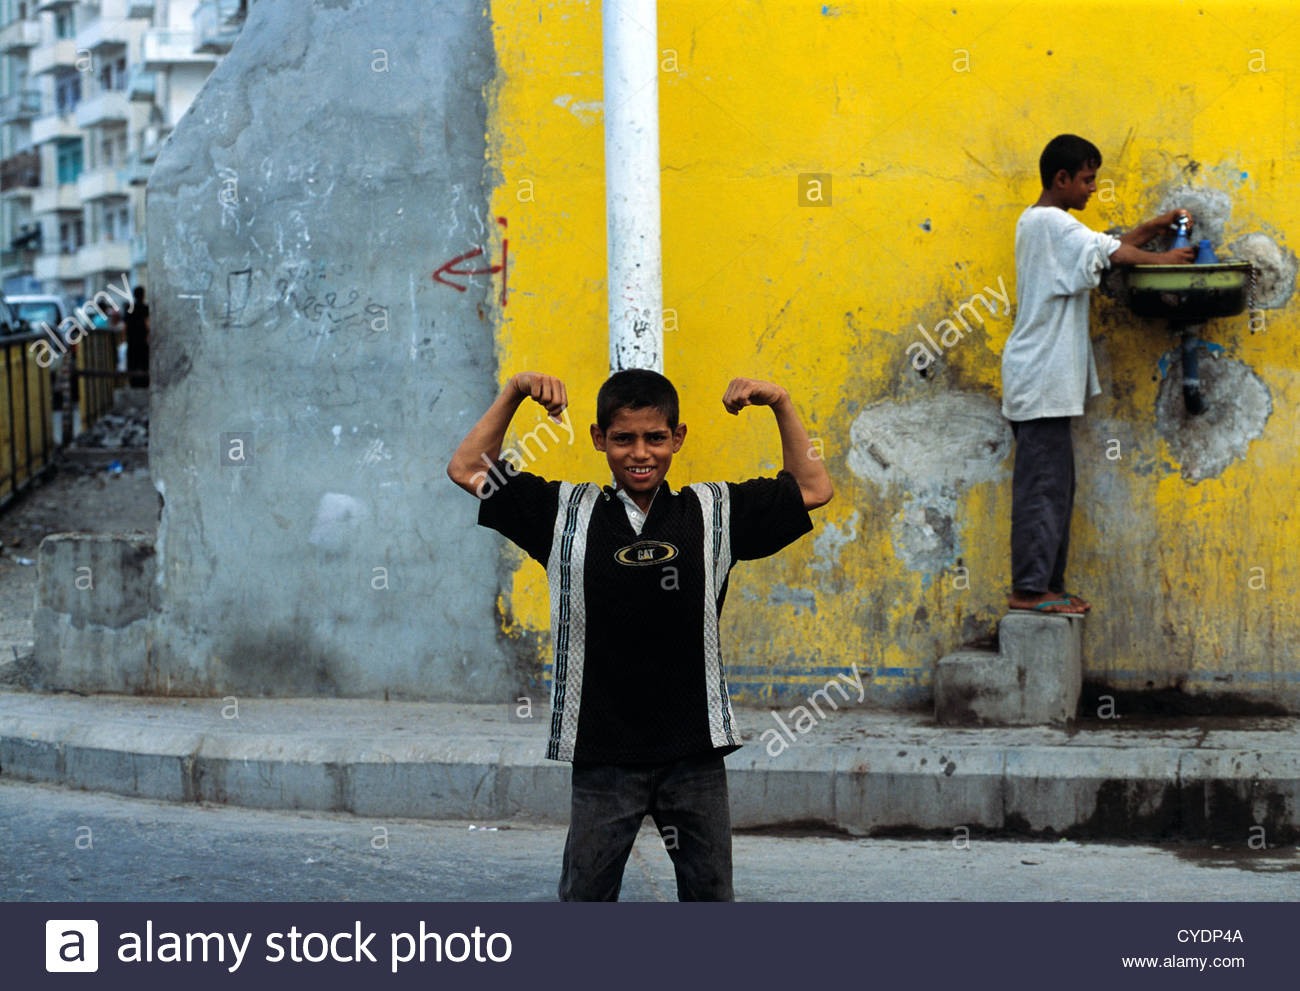 A young boy flexes his muscles in the port city of Aden in Yemen. - Stock Image